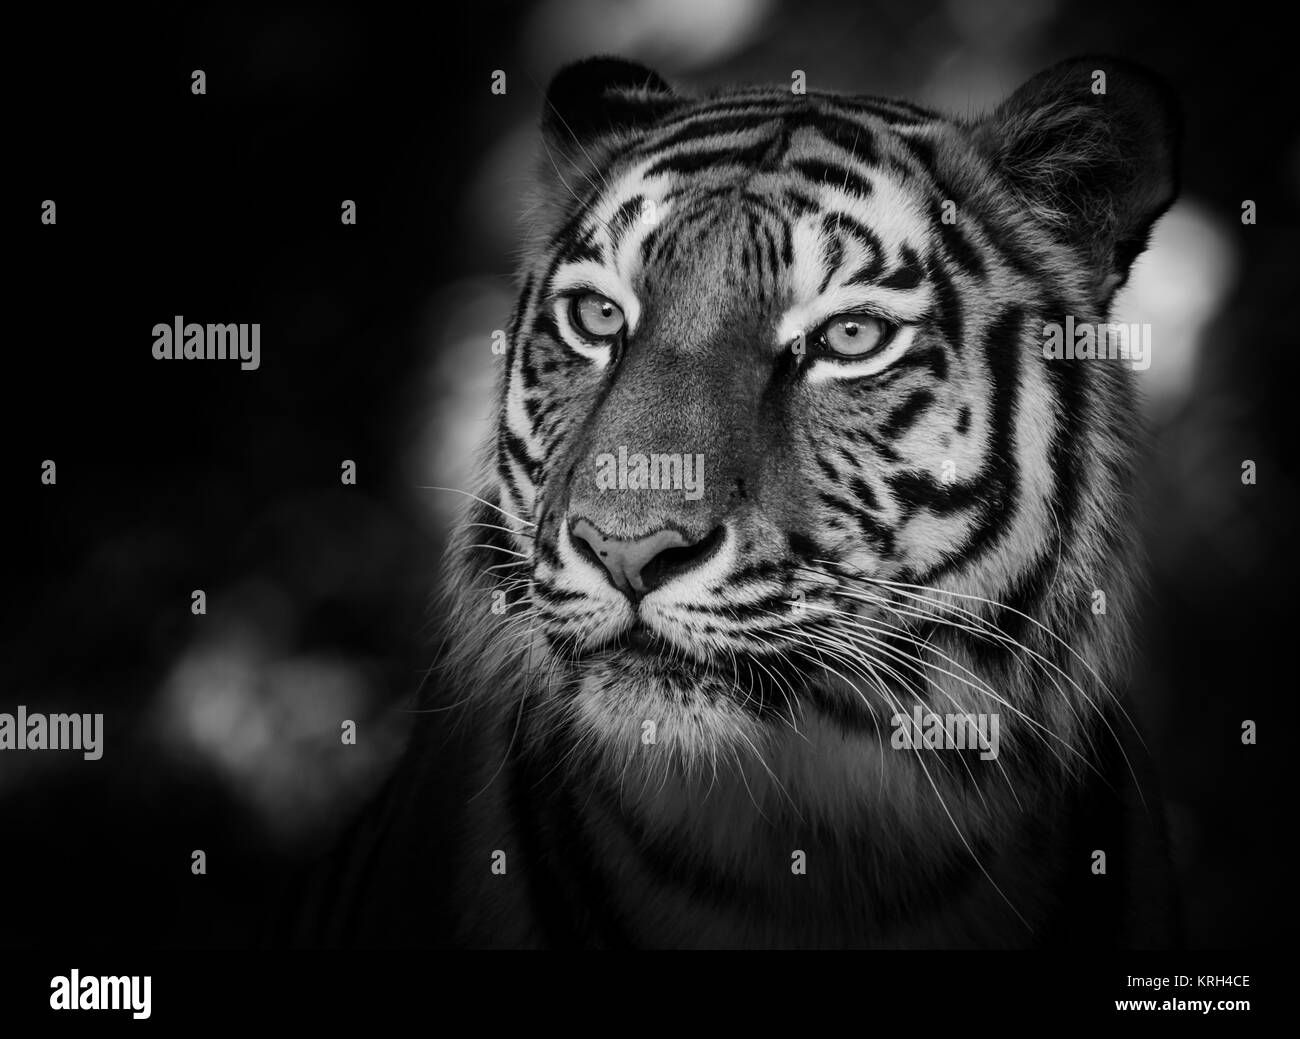 Portrait of a siberian tiger - Stock Image